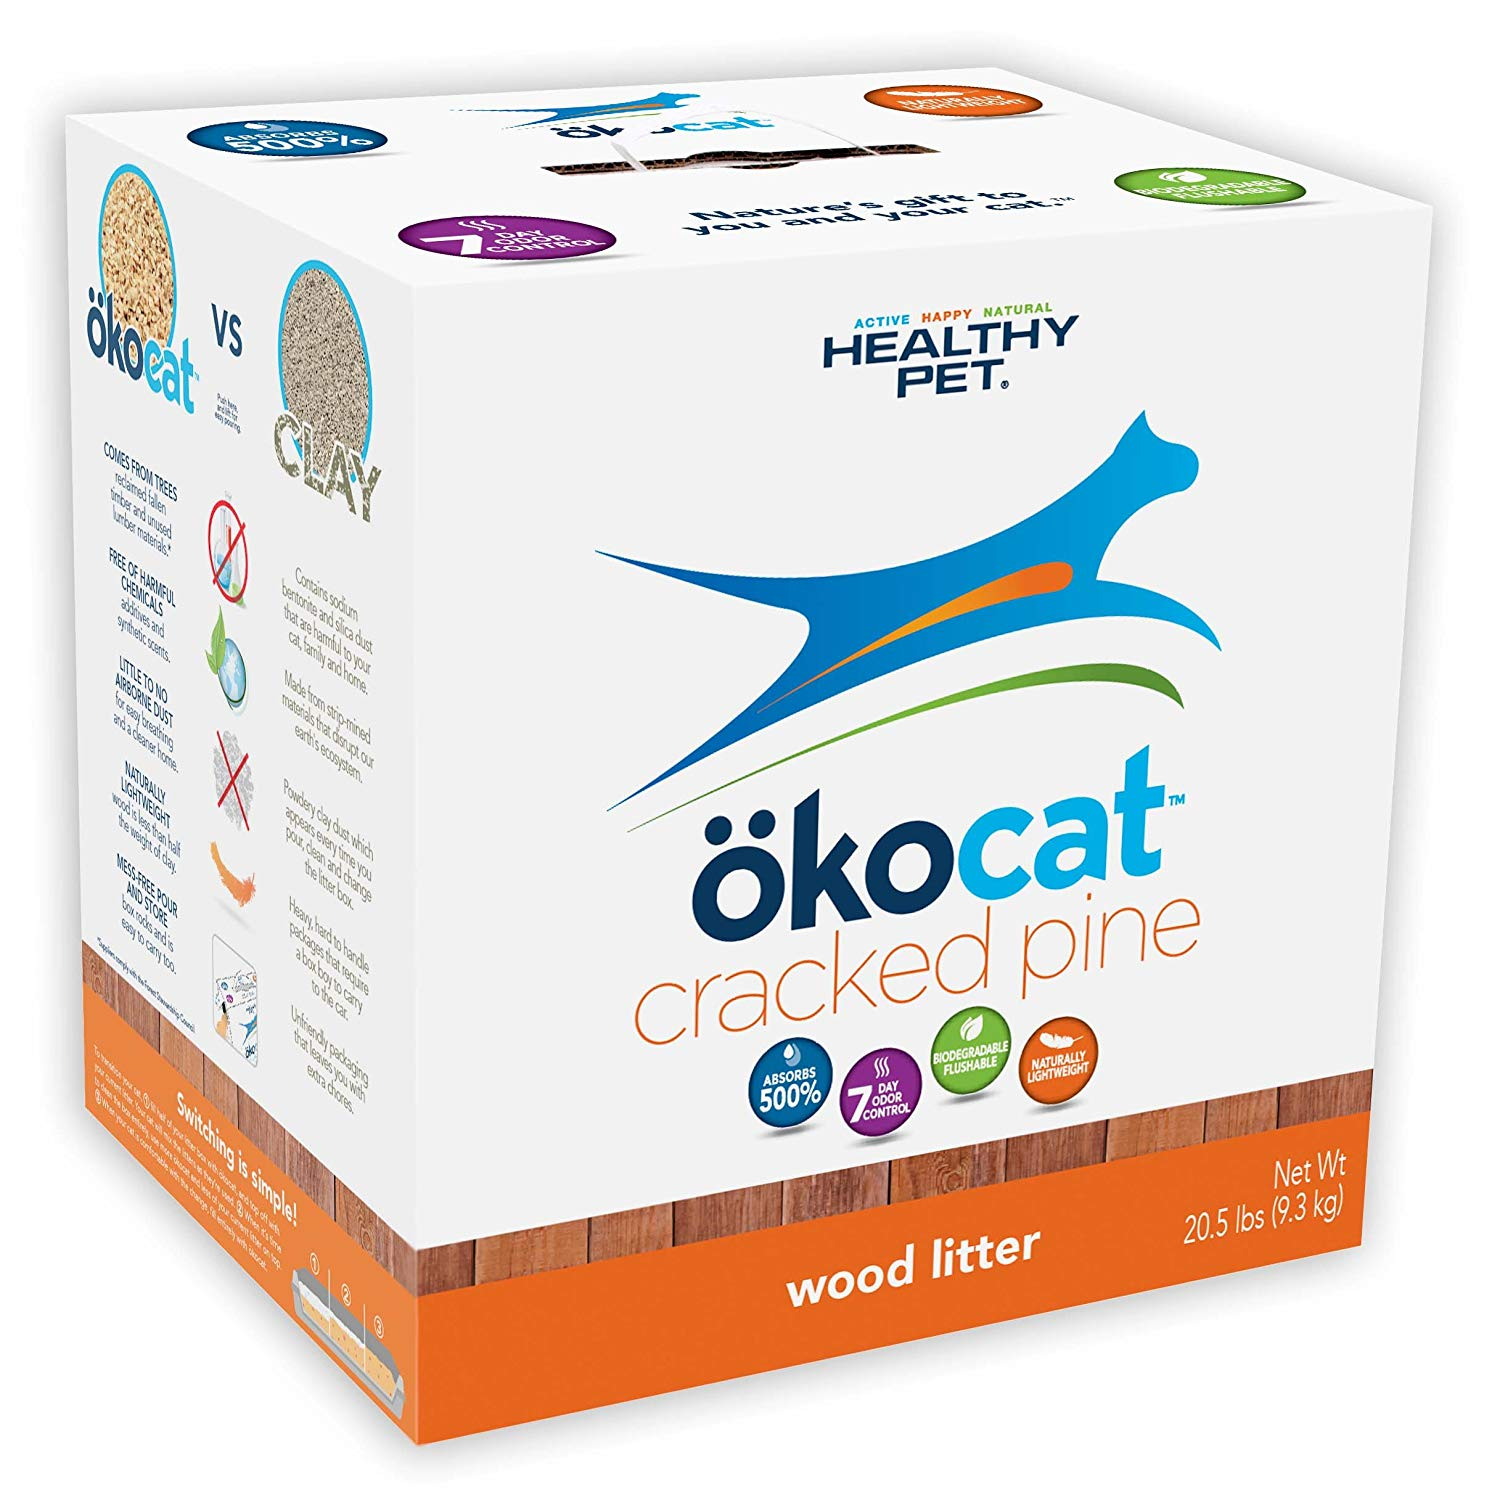 eco friendly cat litter, ocokat, AD